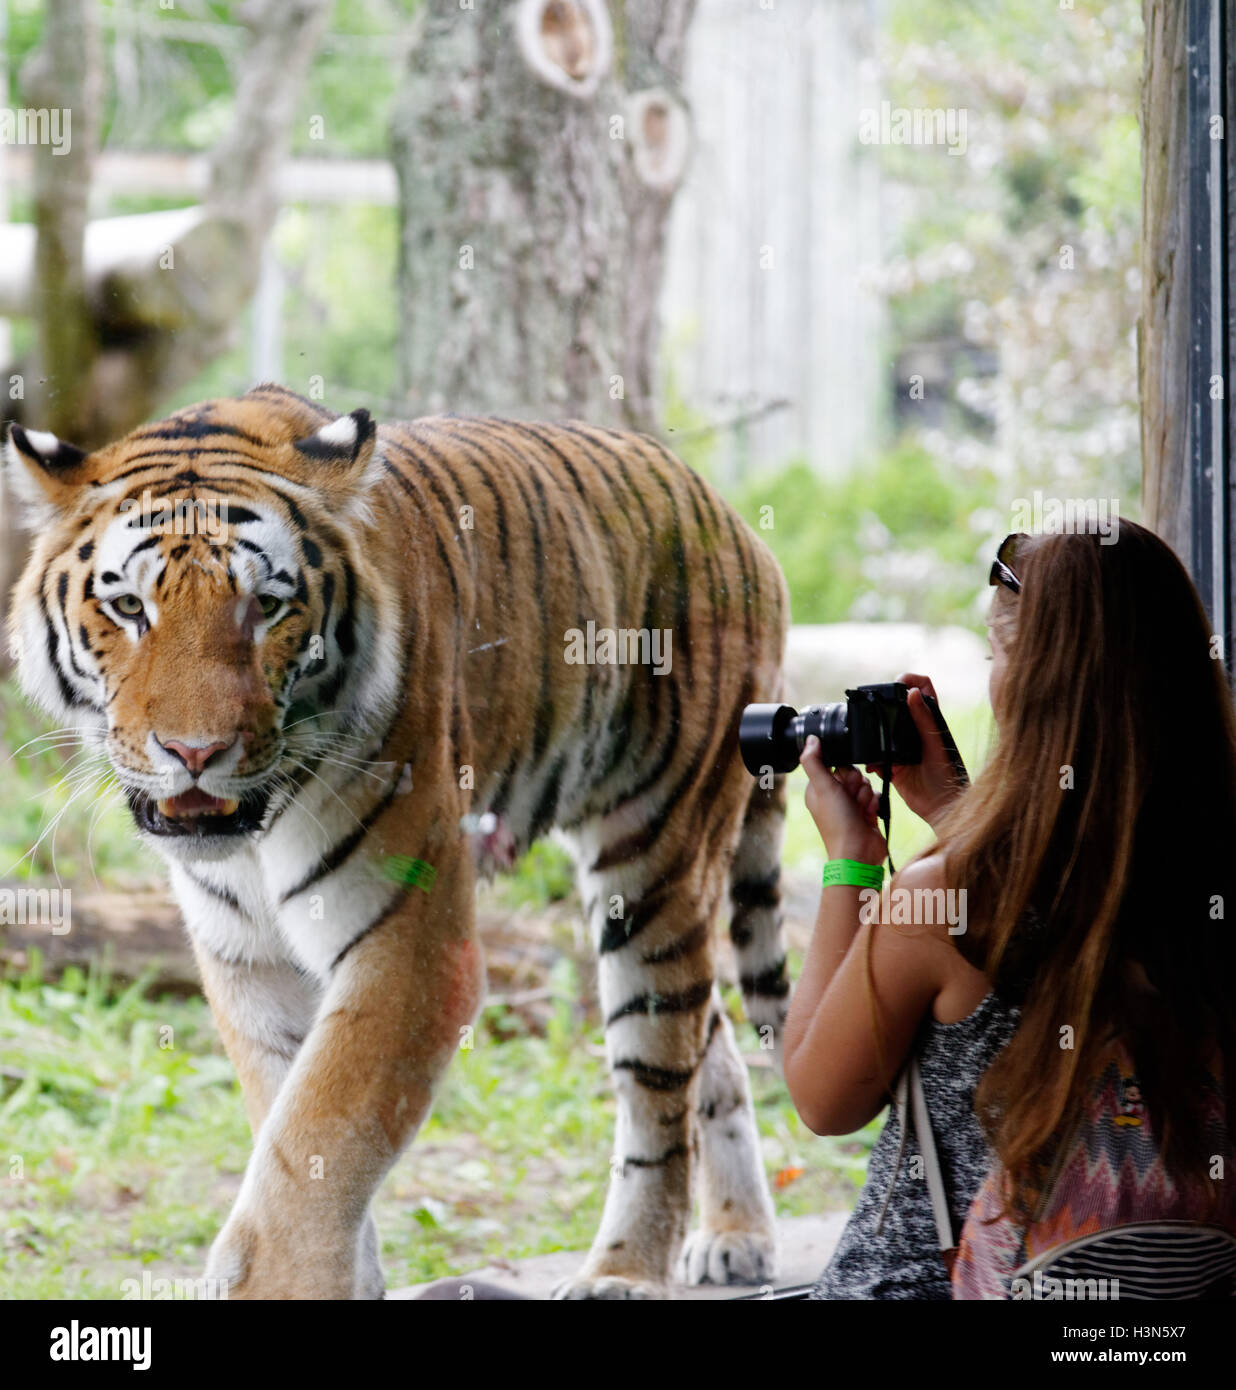 A woman taking a photo of the Siberian tiger in Granby Zoo, Quebec, Canada Stock Photo